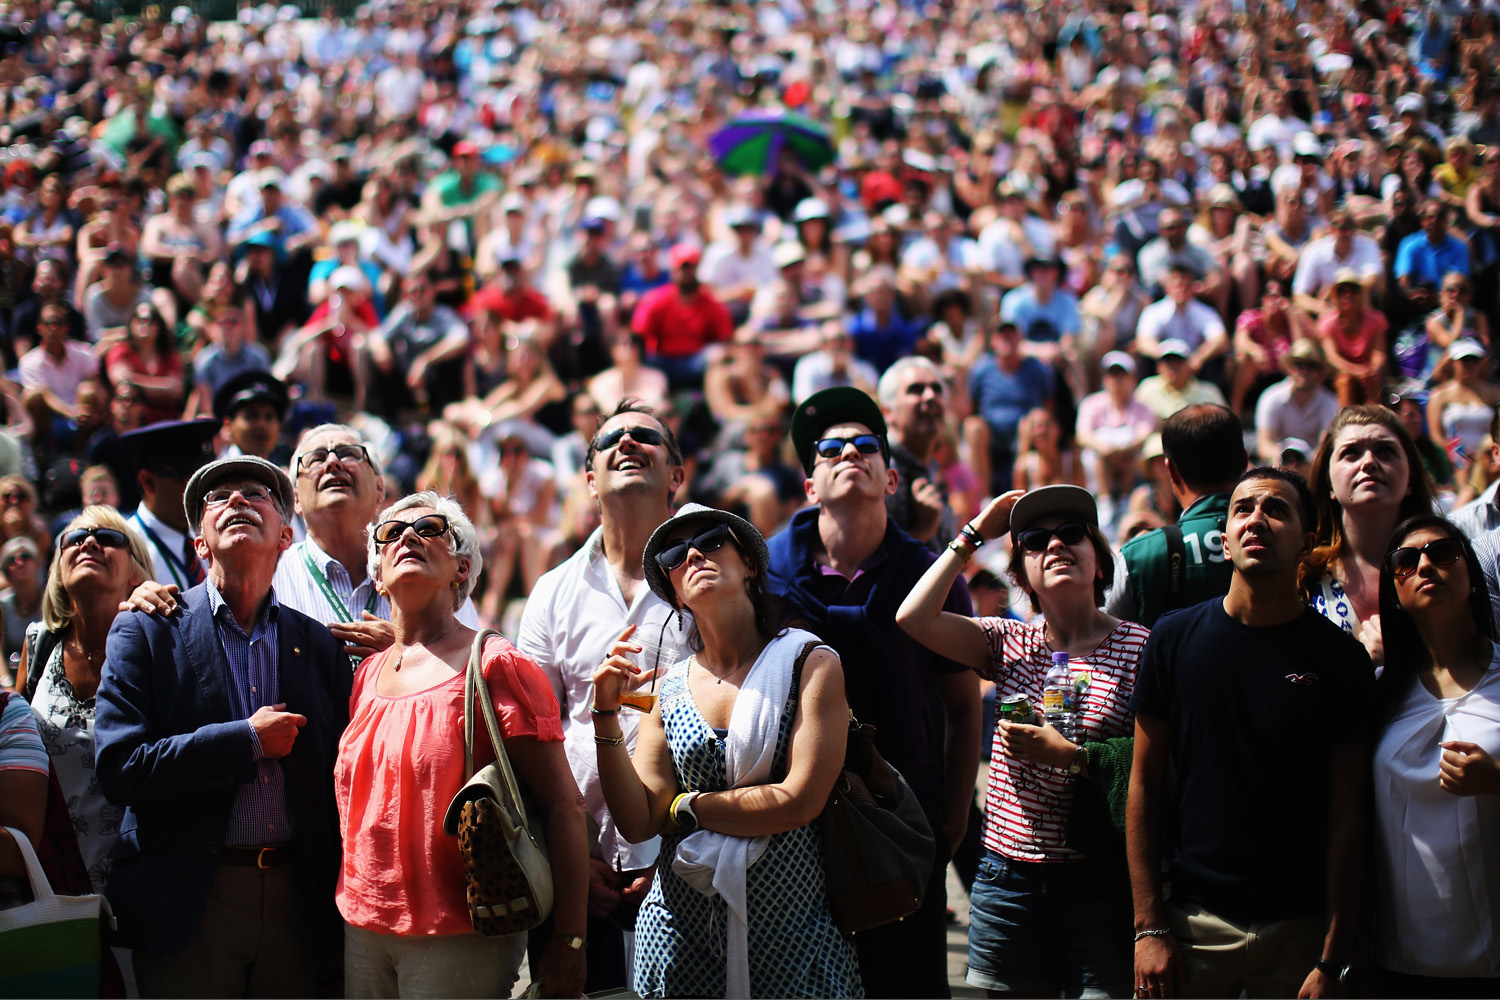 Jul. 2, 2014. Fans on Murray mound look up at the big screen as they watch the Andy Murray against Grigor Dimitrov match on day nine the Wimbledon Lawn Tennis Championships at the All England Lawn Tennis and Croquet Club  at Wimbledon in London, England.